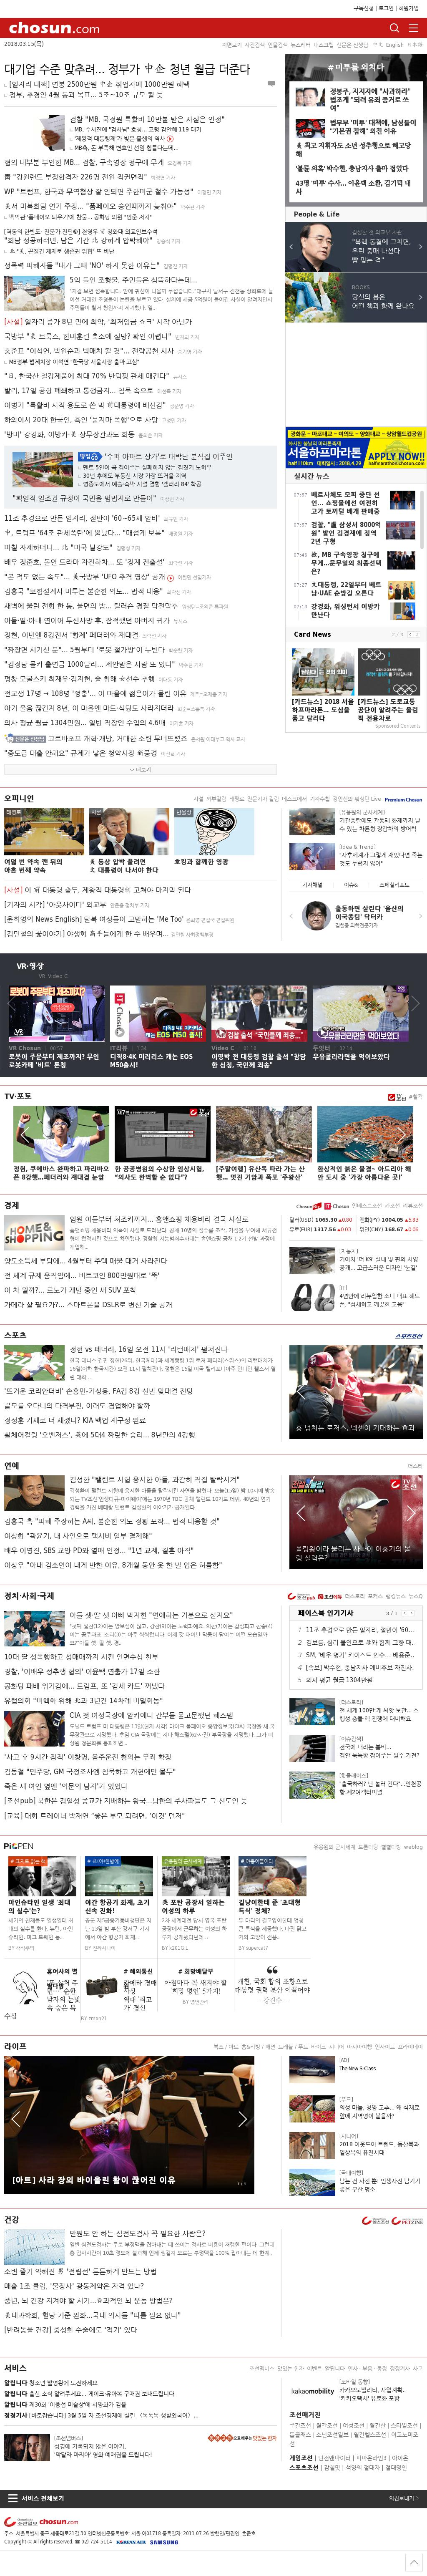 chosun.com at Thursday March 15, 2018, 8:01 a.m. UTC